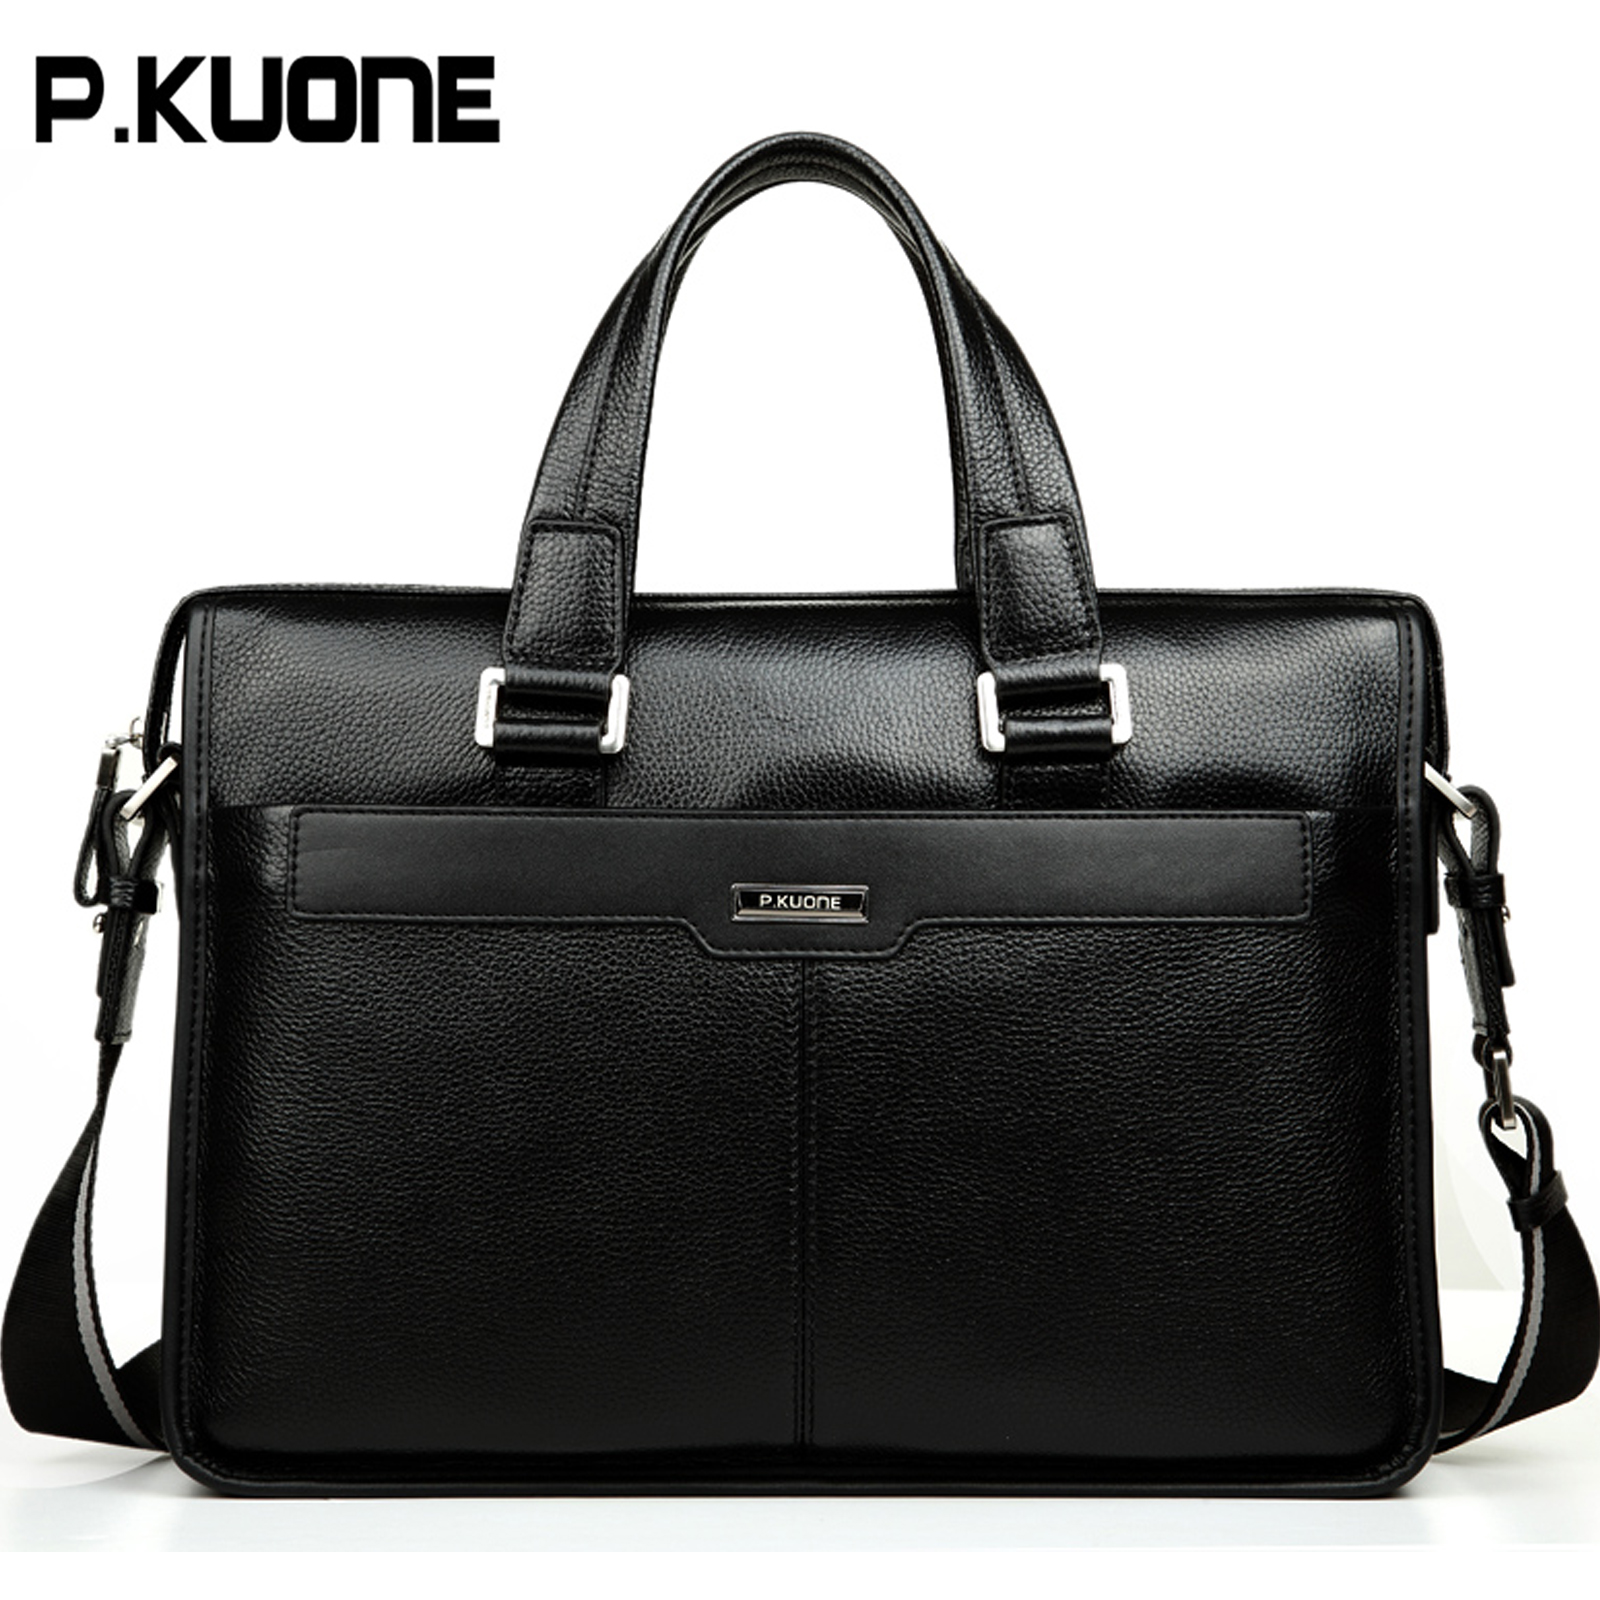 14-034-15-Laptop-Bag-Handbag-Men-039-s-Genuine-Leather-Messenger-Shoulder-Bag-Briefcase